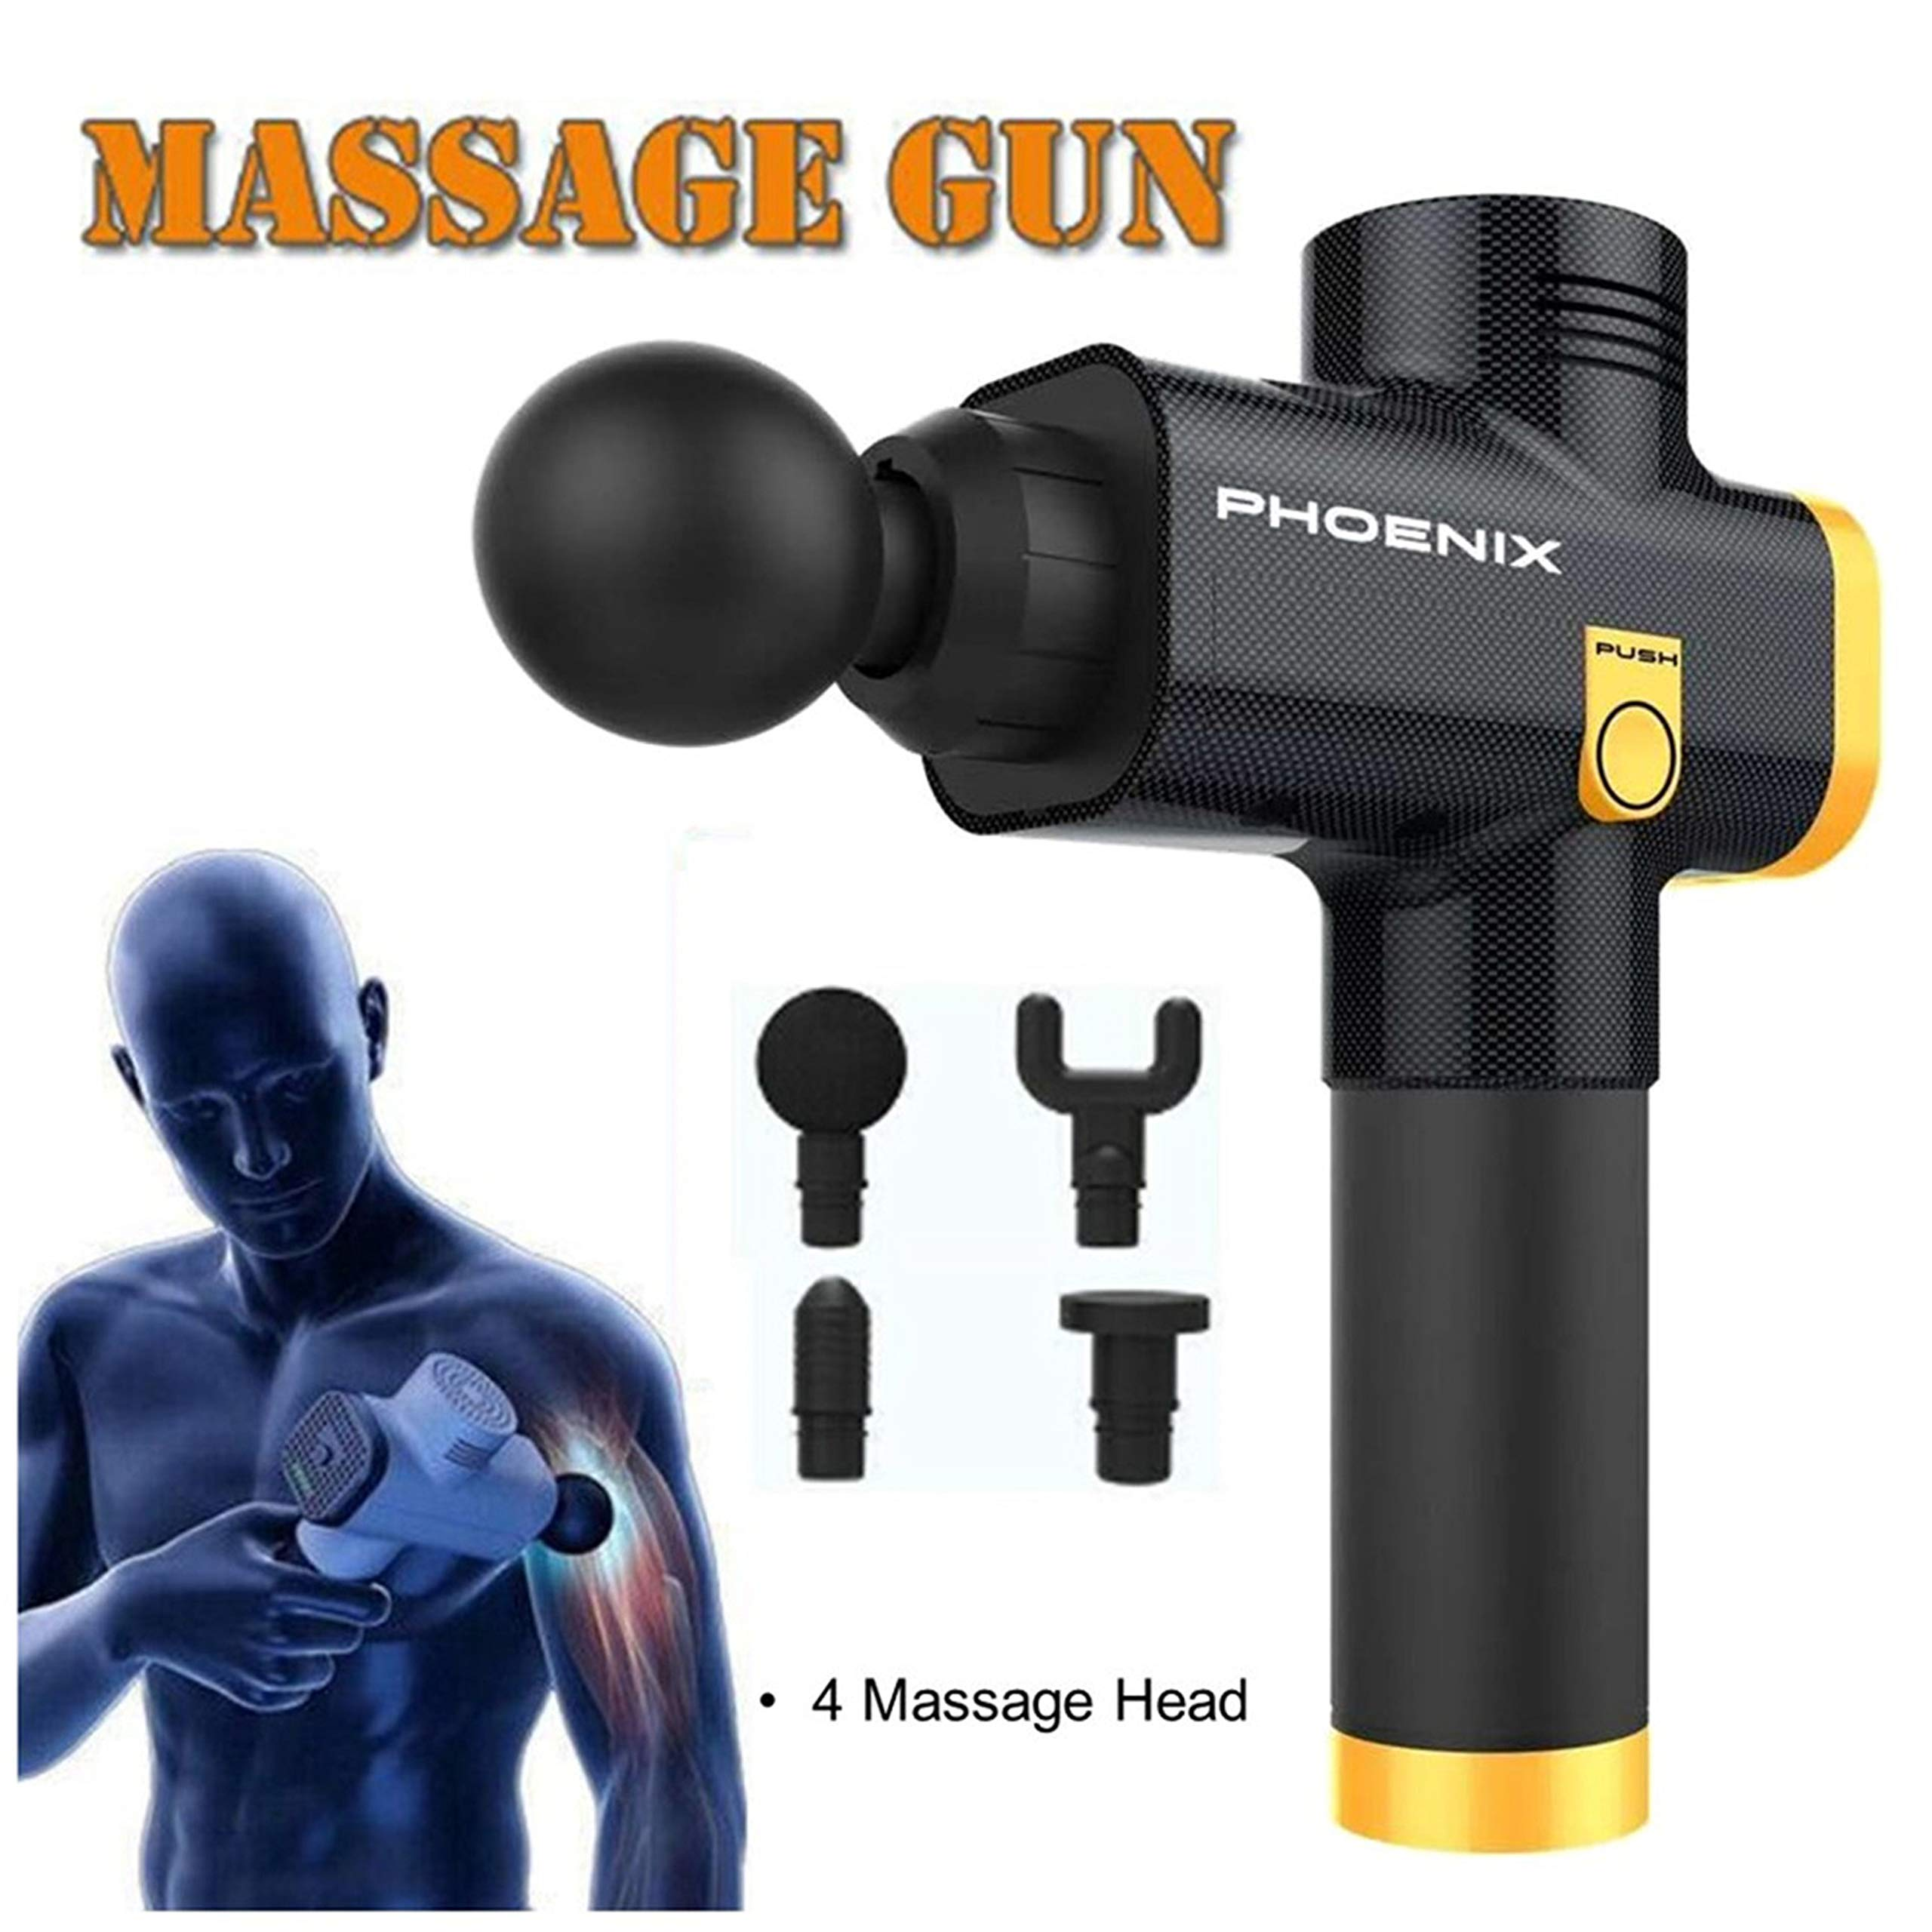 Muscle Massage Gun, Powerful Handheld Personal Cordless Deep Tissue Muscle Massager with 4 Kinds Massage Heads for Muscle Tension Pain Relief (Black) by PHOENIX VITAL LIFE